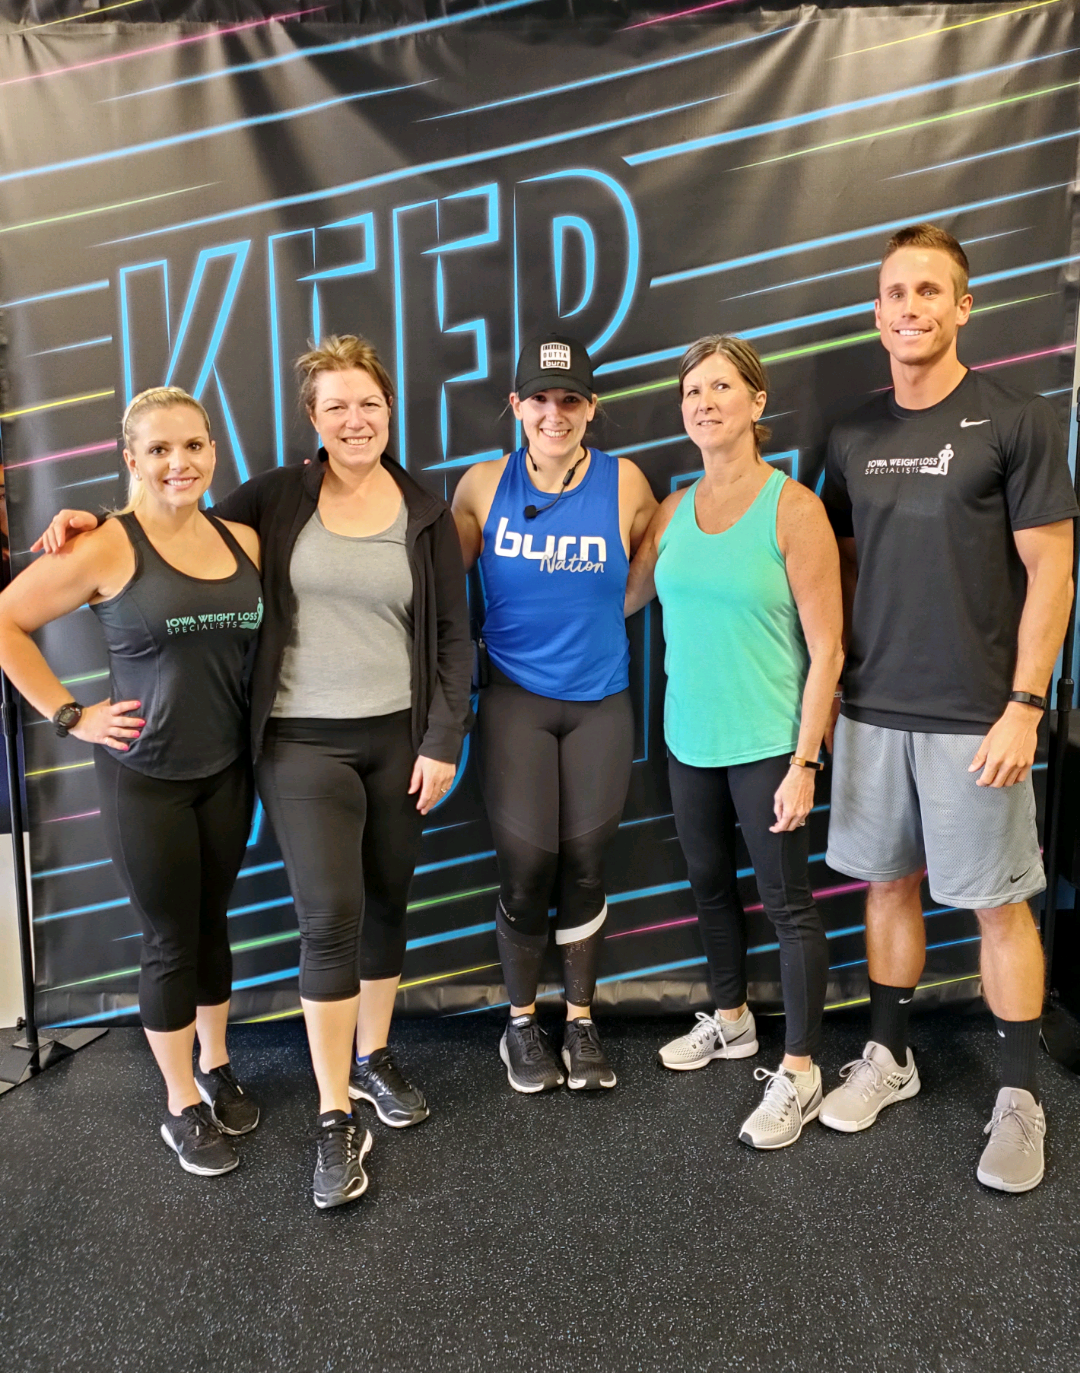 Group Fitness Picture at Burn Boot Camp